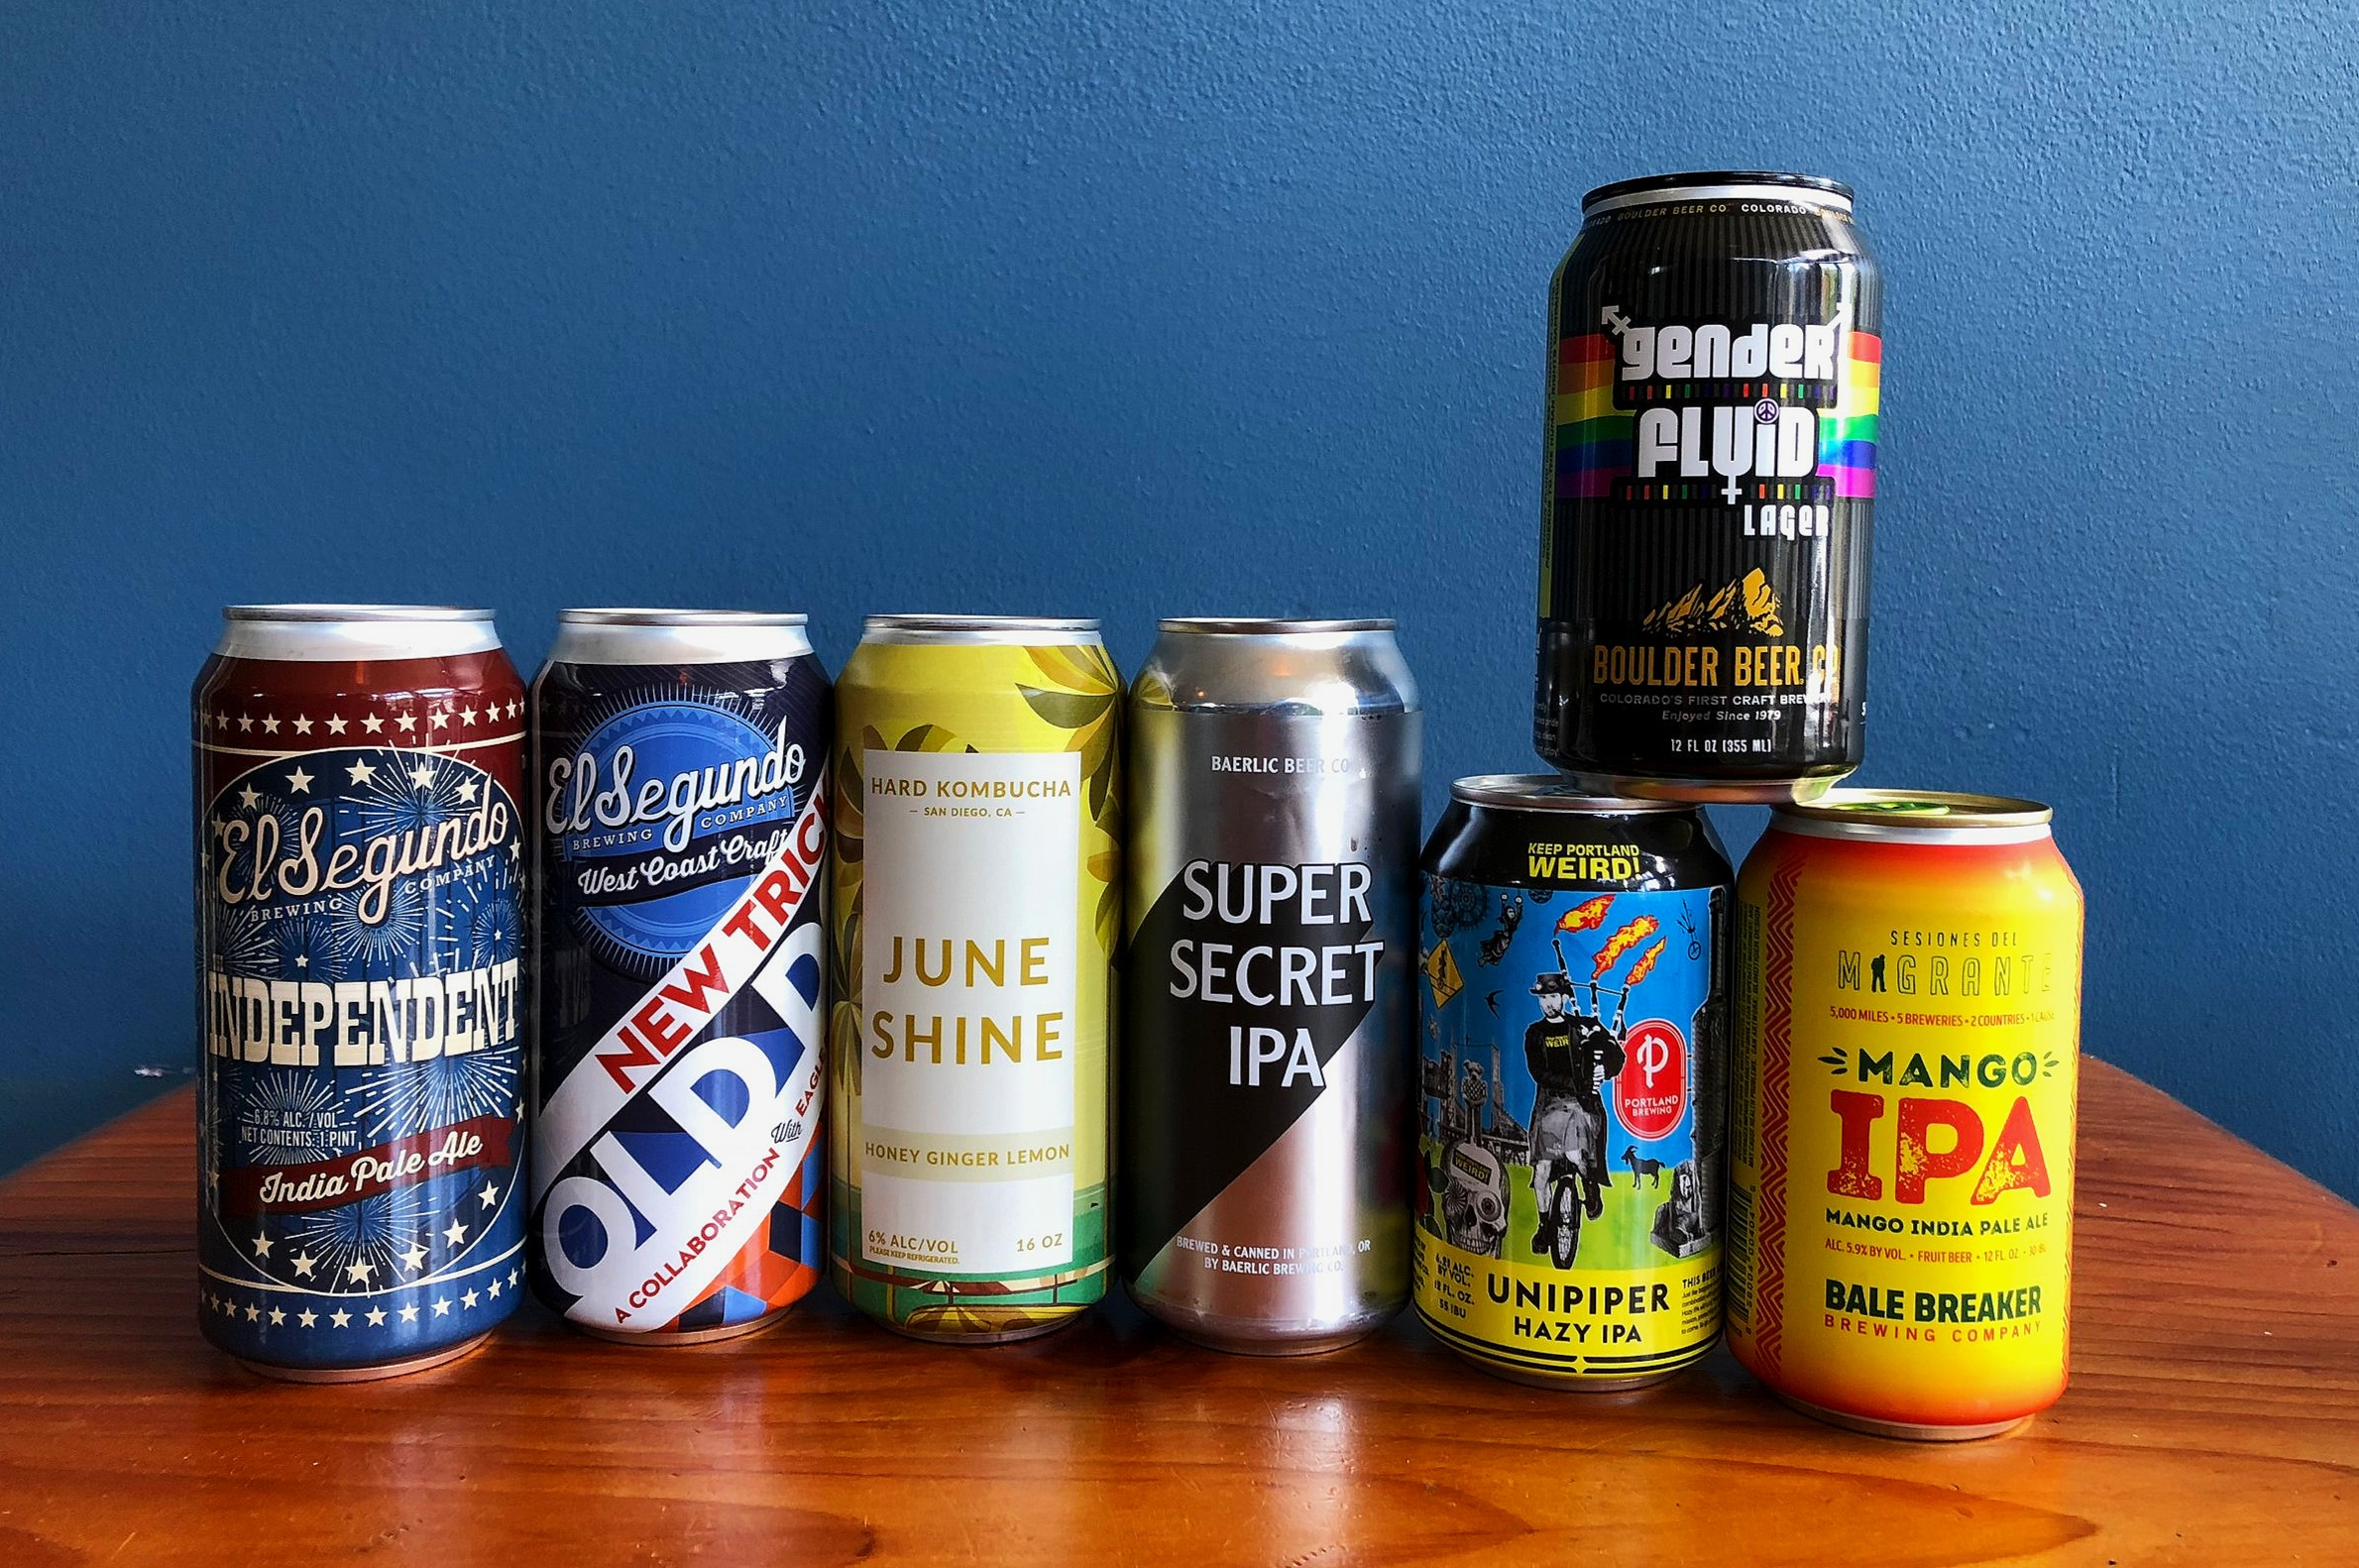 CLICK ON THESE LINKS TO LEARN MORE ABOUT THESE BEERS:    El Segundo  -  June Shine  -  Baerlic  -  Portland Brewing  -  Boulder  -  Bale Breaker